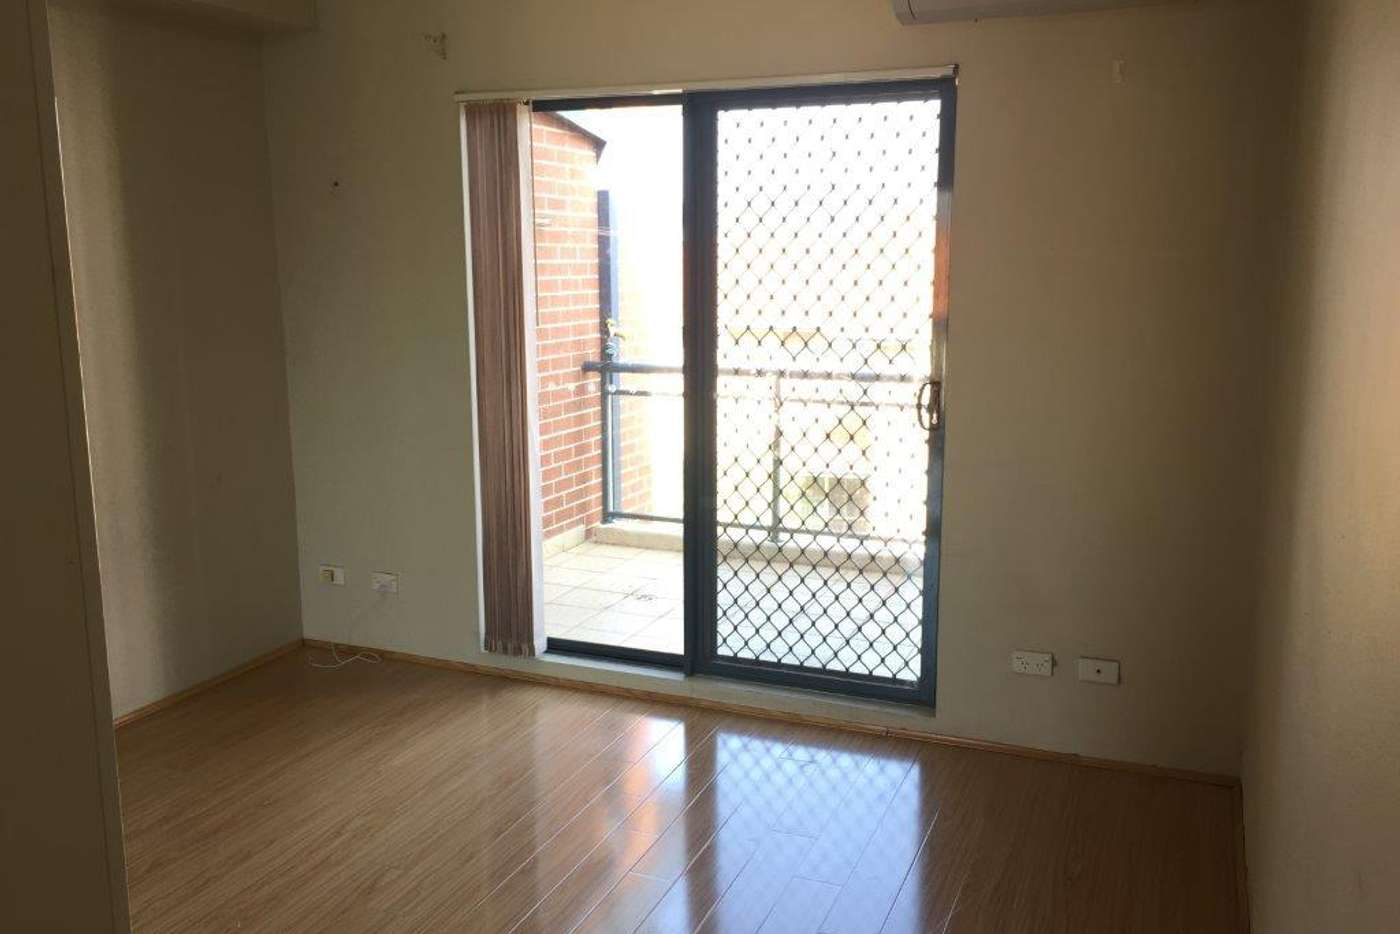 Seventh view of Homely apartment listing, 21/3-5 Boyd Street, Blacktown NSW 2148